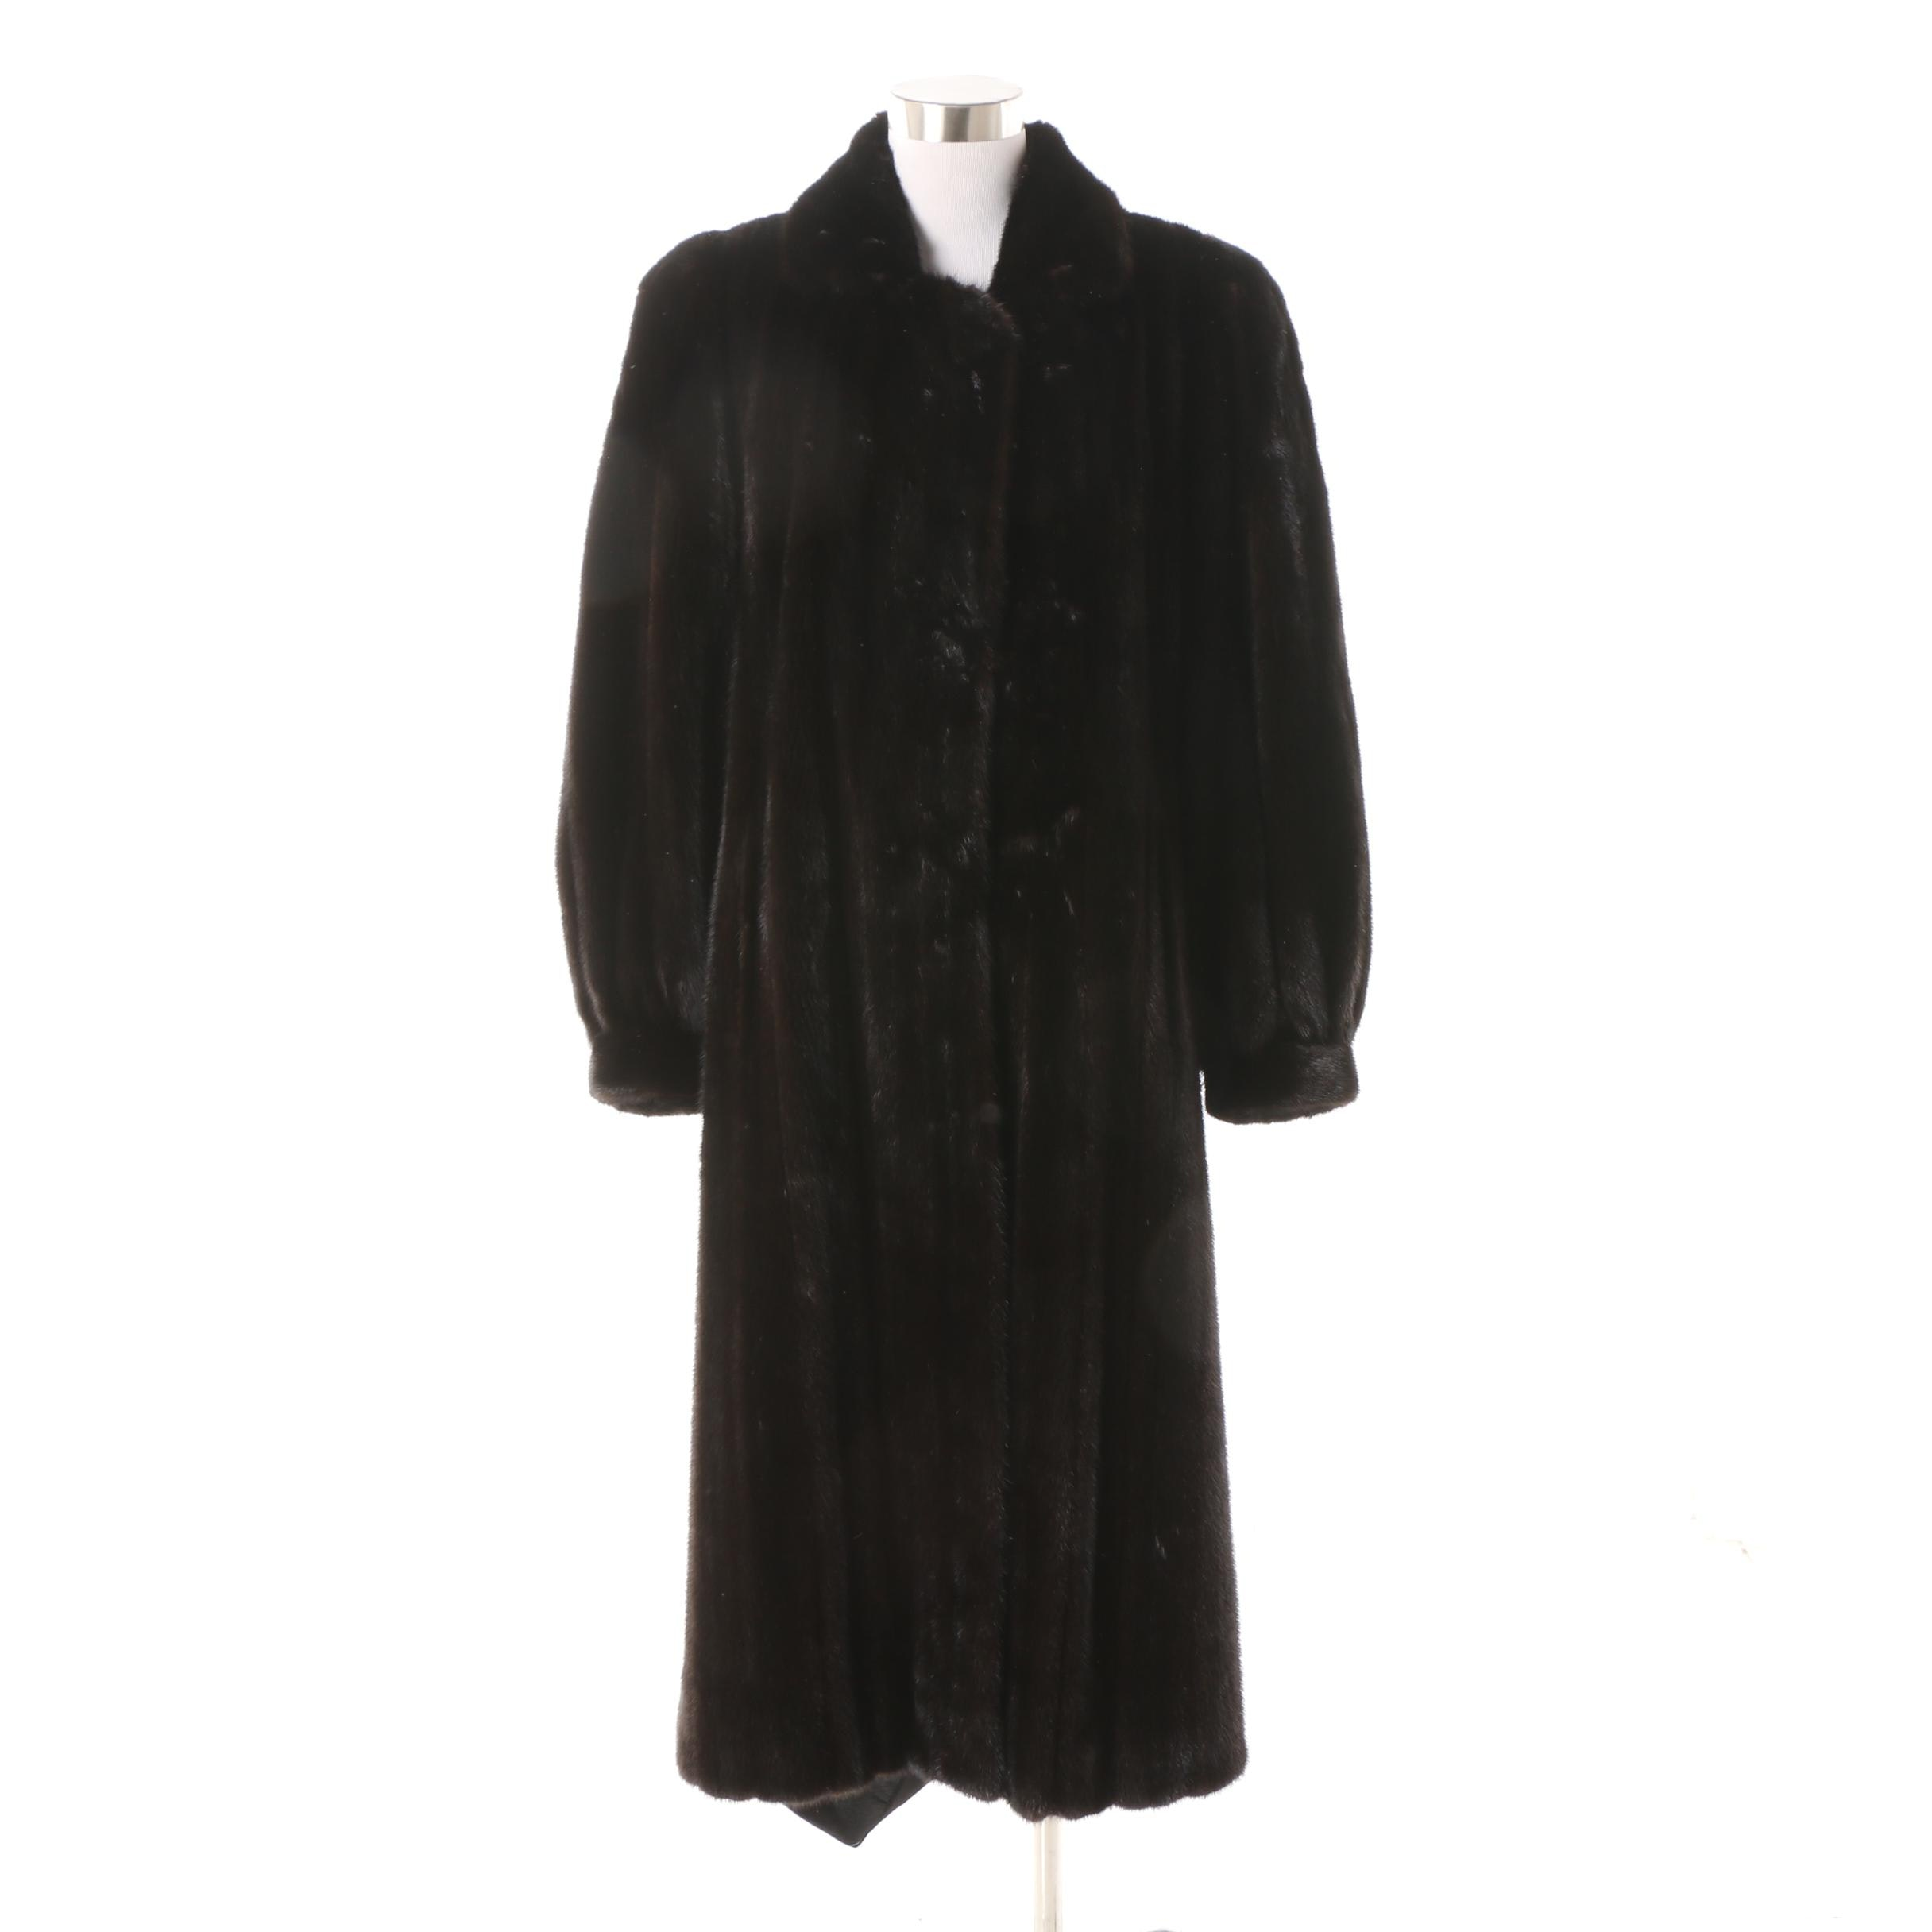 Women's 1980s Vintage Mink Fur Coat by The Evans Collection